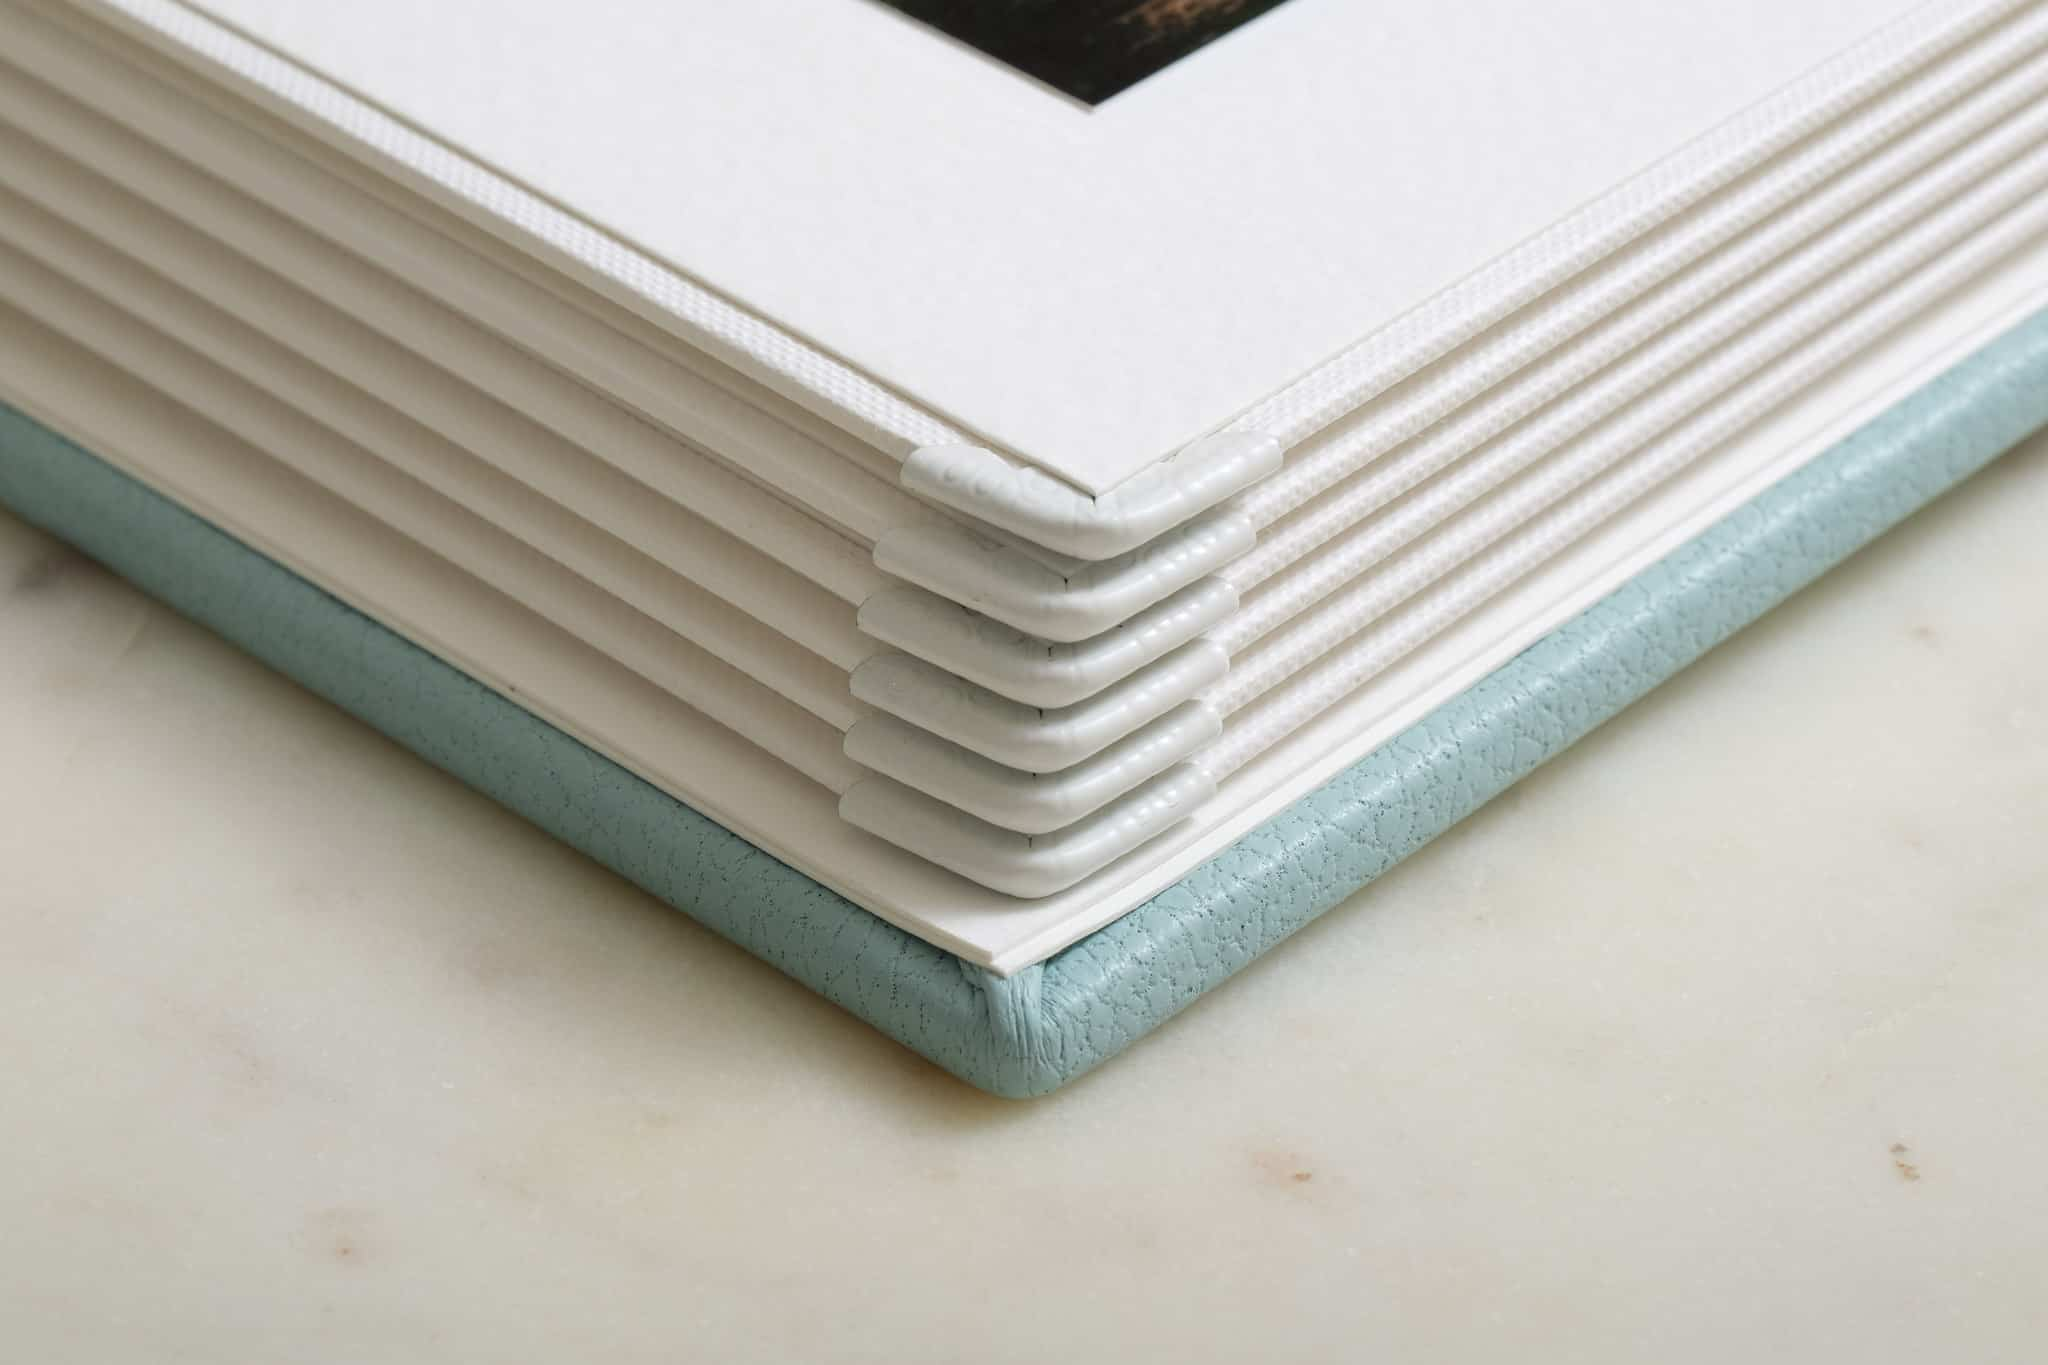 Pagement matted wedding photo albums with corner protectors.